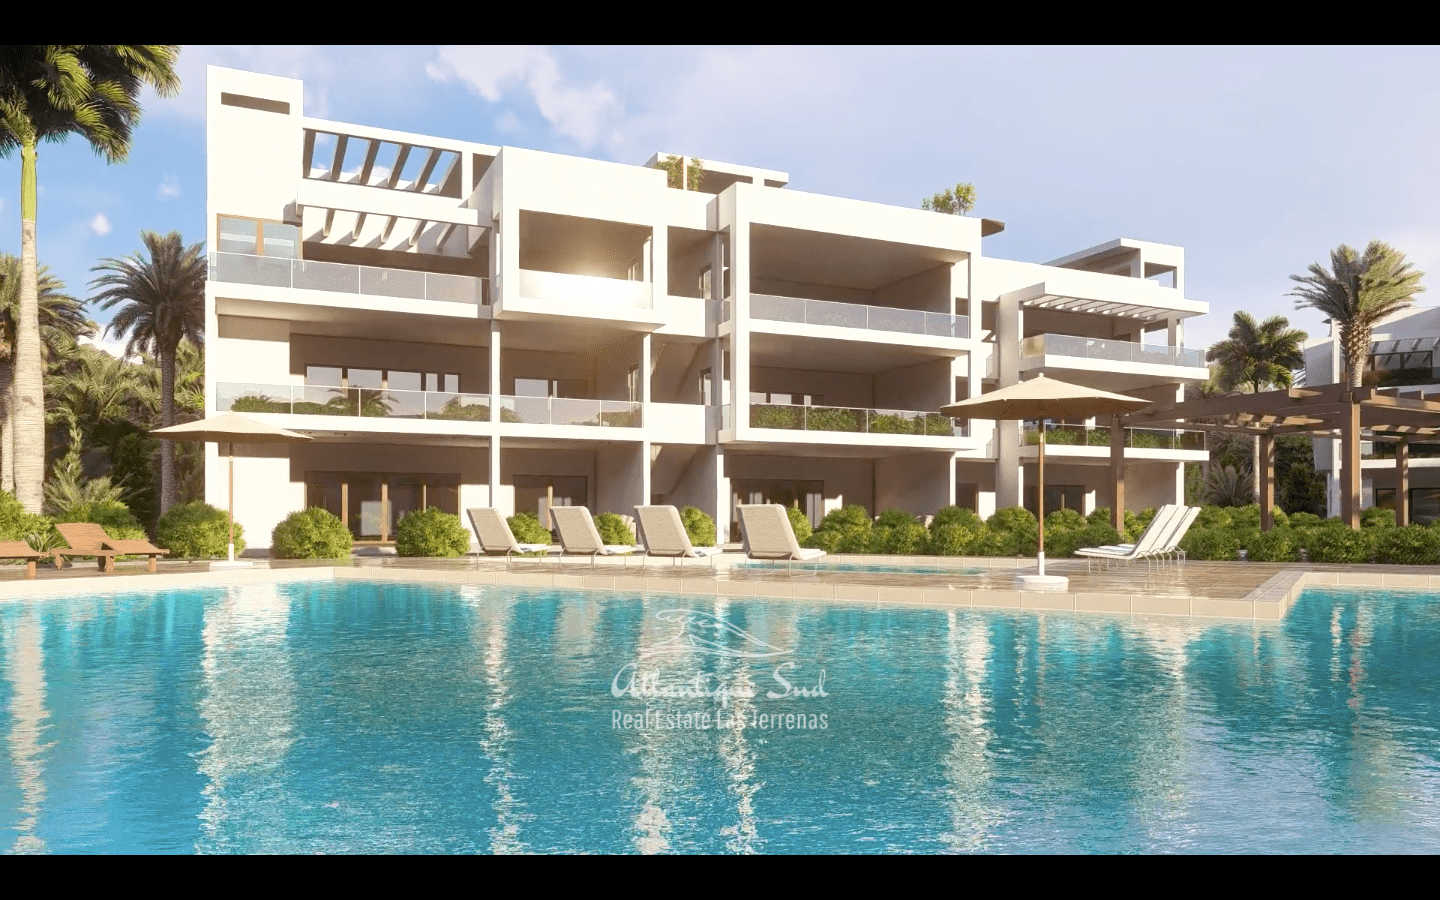 Condos for sale in Las Terrenas Dominican Republic 1.jpg